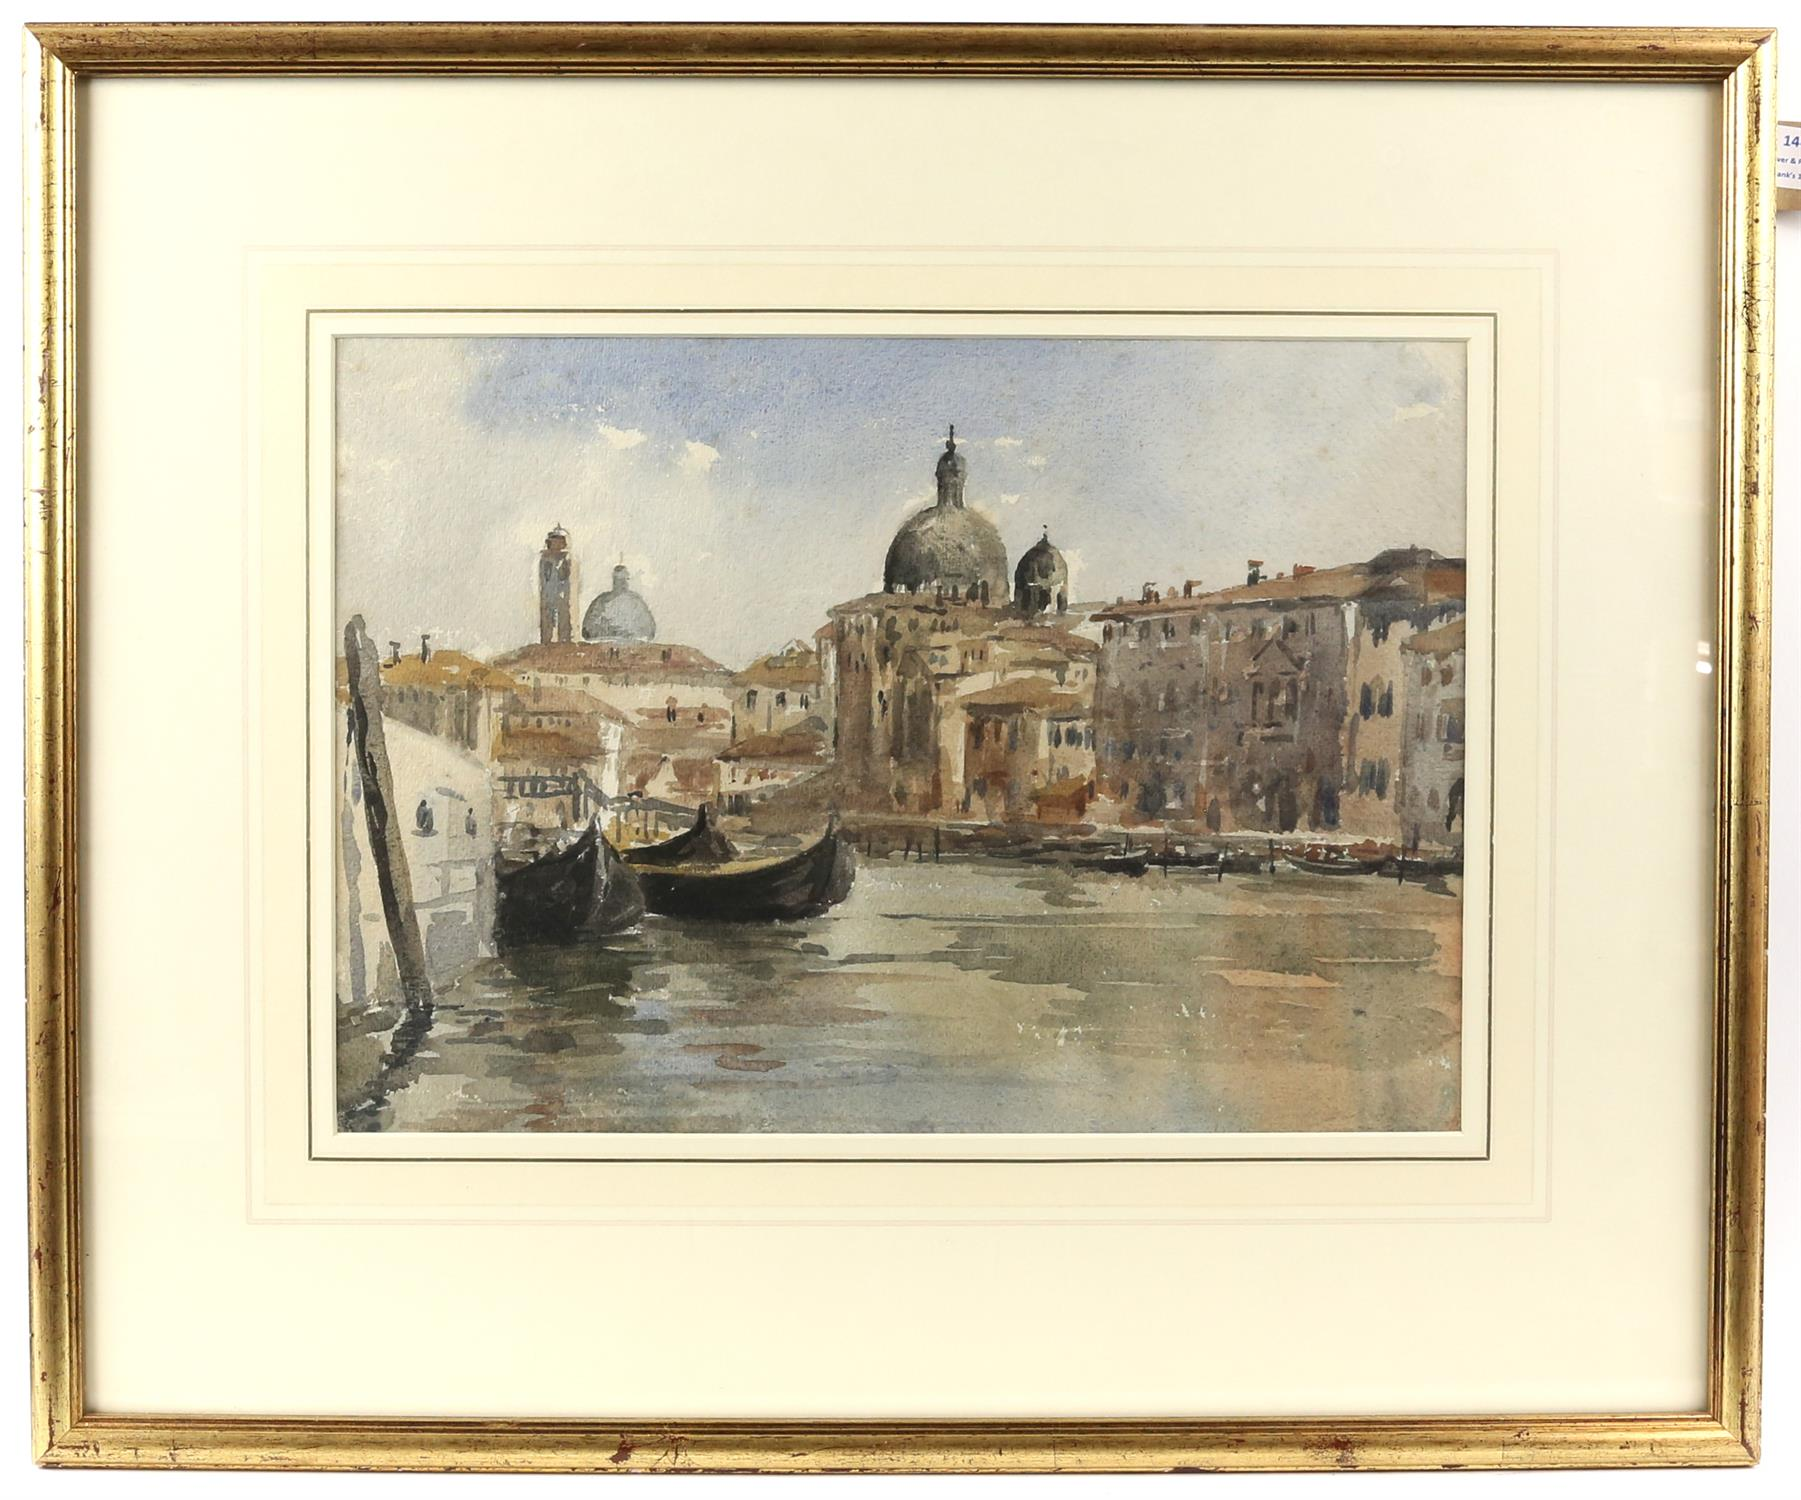 Attributed to Sir Charles W. D'Oyly (British, 1781-1845). The Grand Canal, Venice. Watercolour. - Image 2 of 3